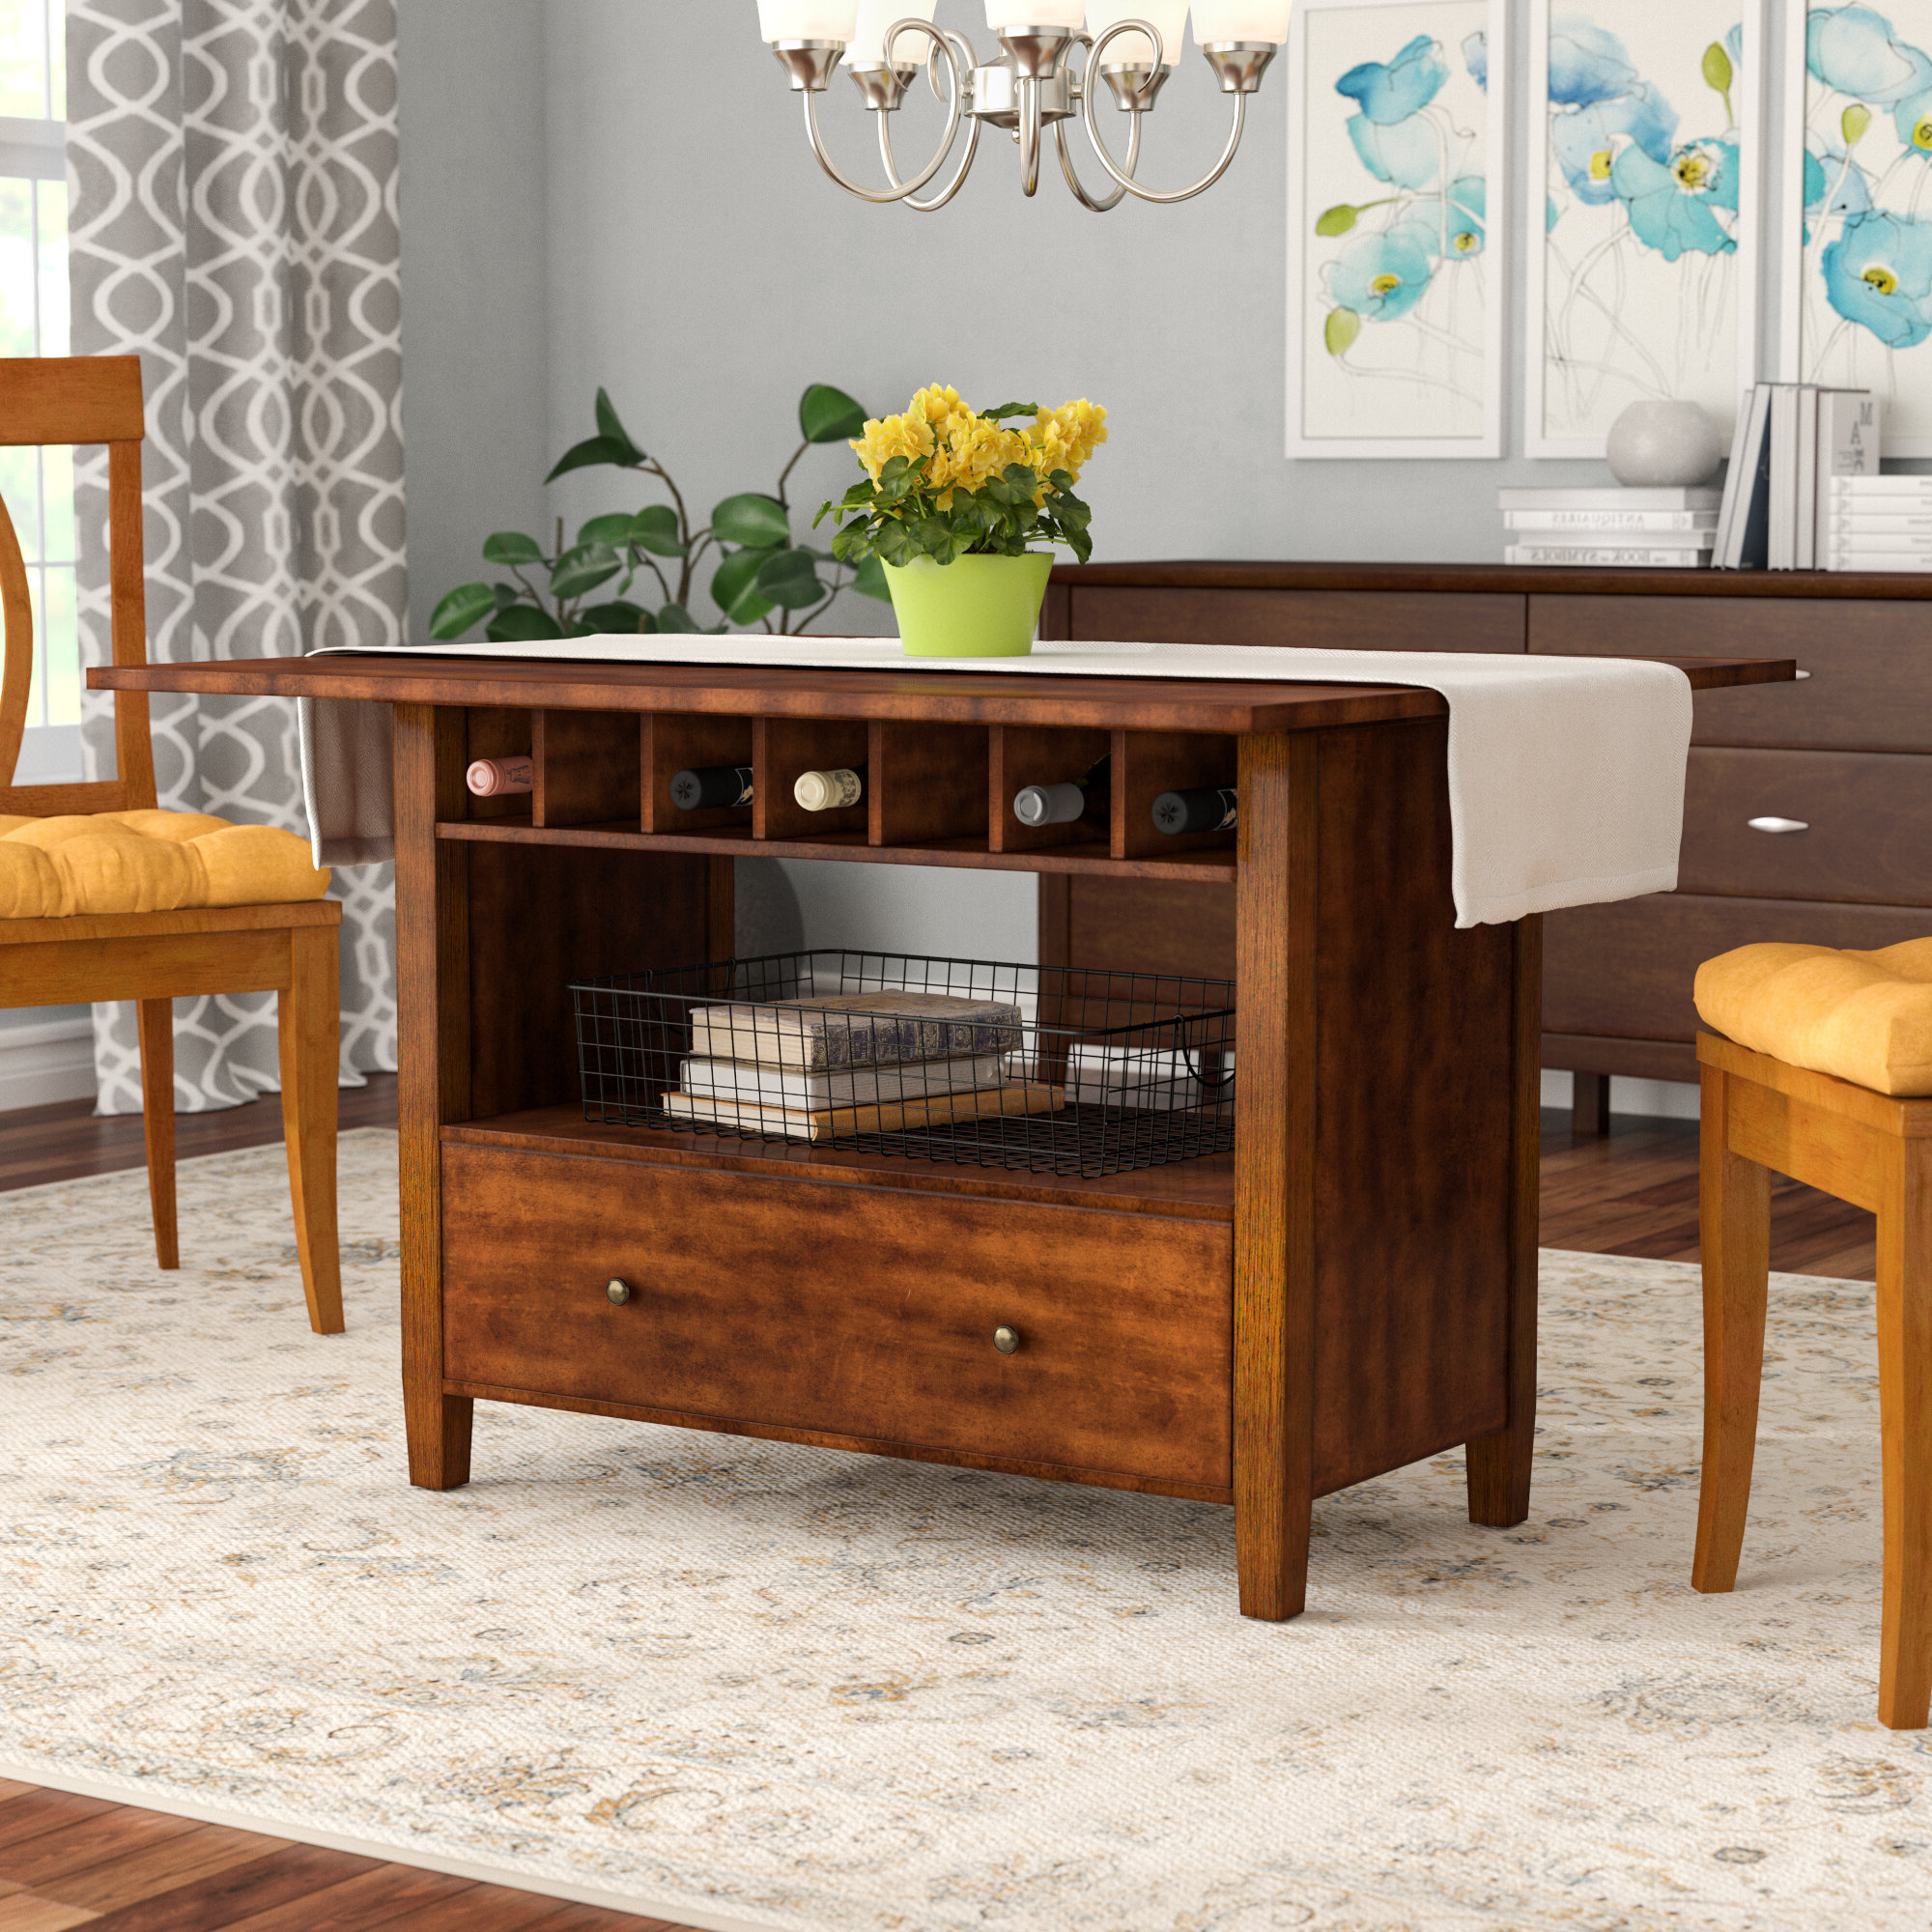 Wayfair Inside 2020 Transitional Antique Walnut Drop Leaf Casual Dining Tables (View 14 of 25)